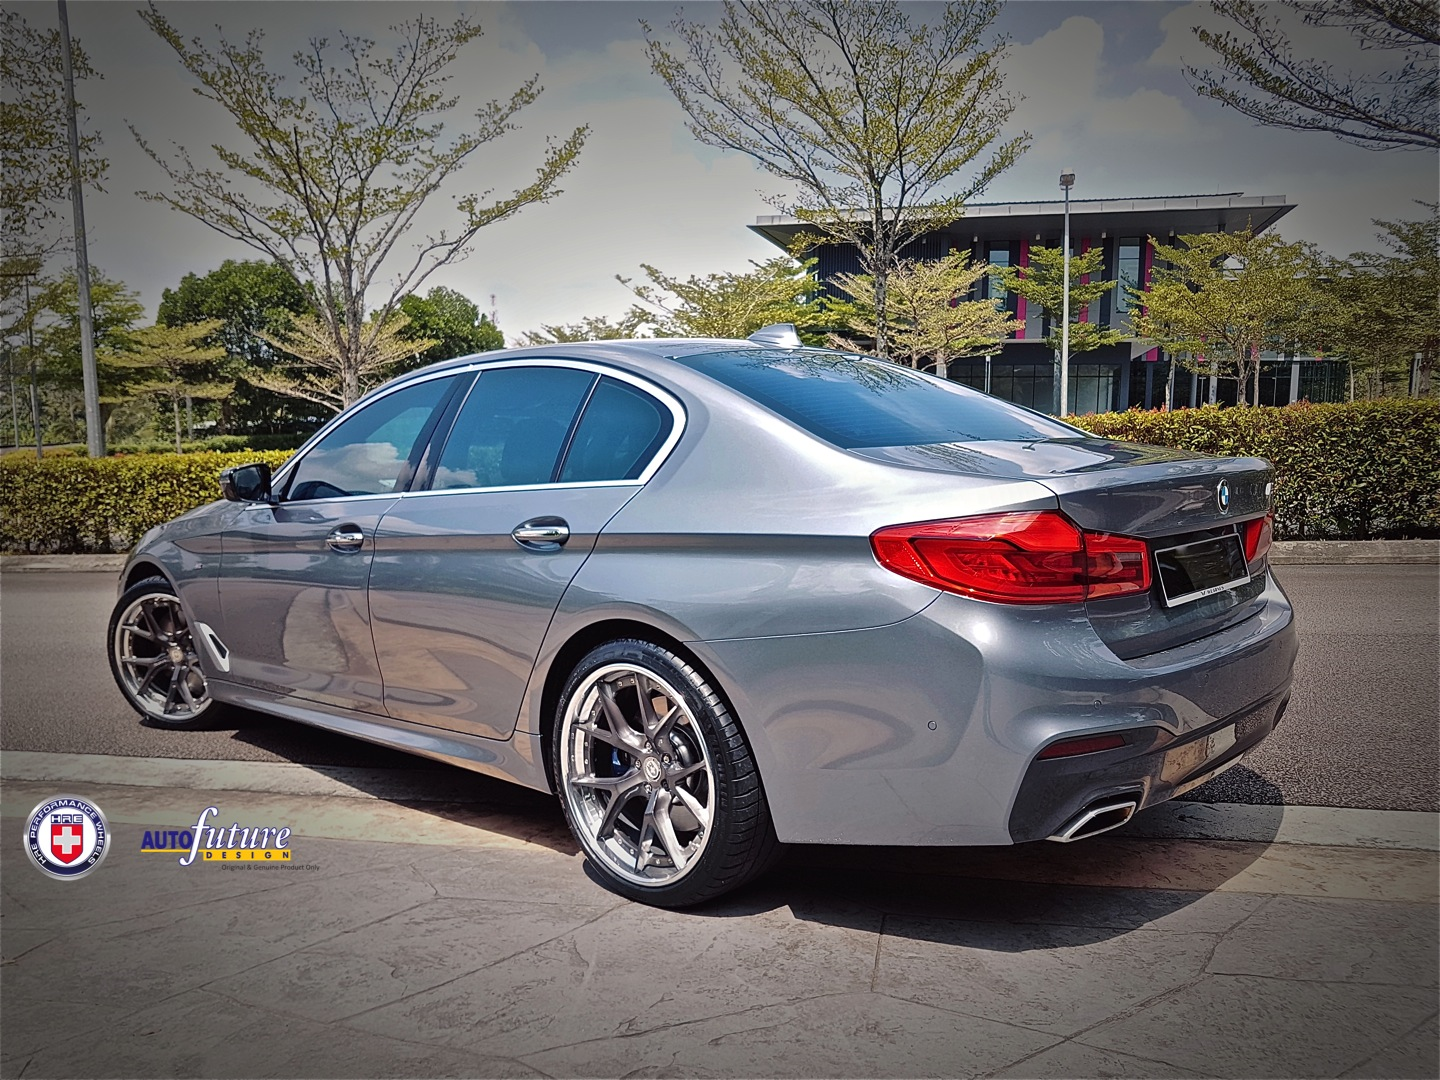 Custom Builds Hre Forged S101 Equipped On The Bmw G30 5 Series